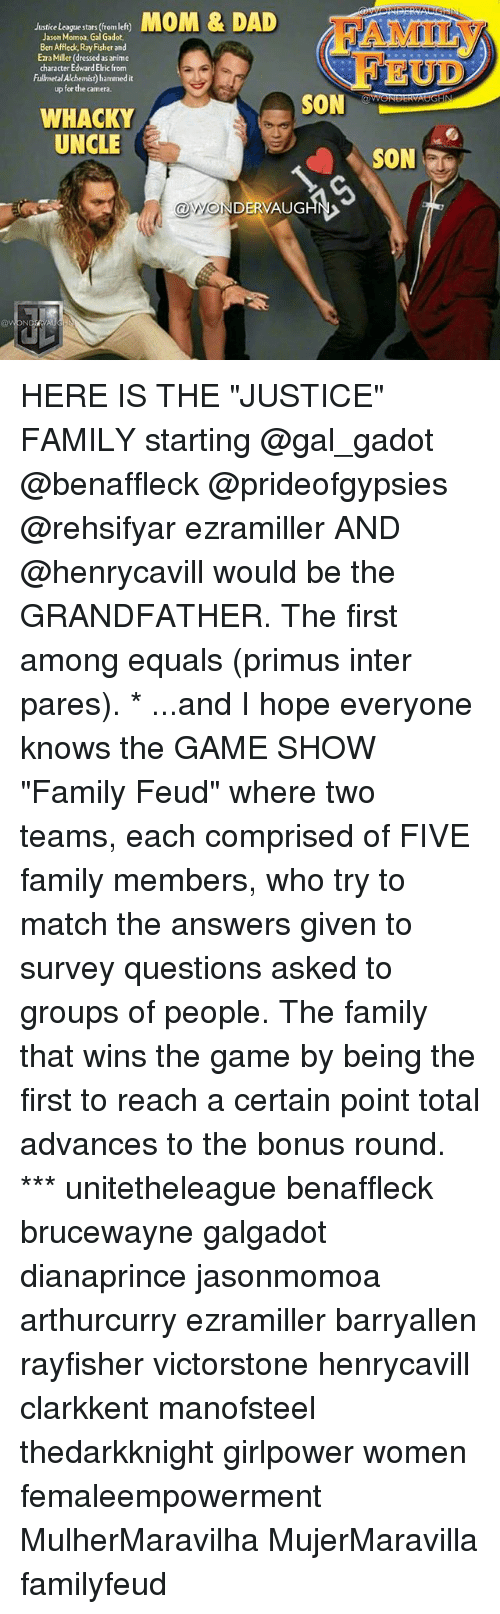 """Family Feud: Jaticelogqestan (iemlet MOM & DAD  Justice League stars (rom left)  Jason Momoa, Gal Gadot.  Ben Affleck, Ray Fisher and  Ezra Miller (dressed as anime  character Edward Elric from  Fulmetal Alchemist) hammed it  up for the camera.  AMILY  EUD  SON  WHACKY  UNCLE  @WONDERVAUGHN>  ave HERE IS THE """"JUSTICE"""" FAMILY starting @gal_gadot @benaffleck @prideofgypsies @rehsifyar ezramiller AND @henrycavill would be the GRANDFATHER. The first among equals (primus inter pares). * ...and I hope everyone knows the GAME SHOW """"Family Feud"""" where two teams, each comprised of FIVE family members, who try to match the answers given to survey questions asked to groups of people. The family that wins the game by being the first to reach a certain point total advances to the bonus round. *** unitetheleague benaffleck brucewayne galgadot dianaprince jasonmomoa arthurcurry ezramiller barryallen rayfisher victorstone henrycavill clarkkent manofsteel thedarkknight girlpower women femaleempowerment MulherMaravilha MujerMaravilla familyfeud"""